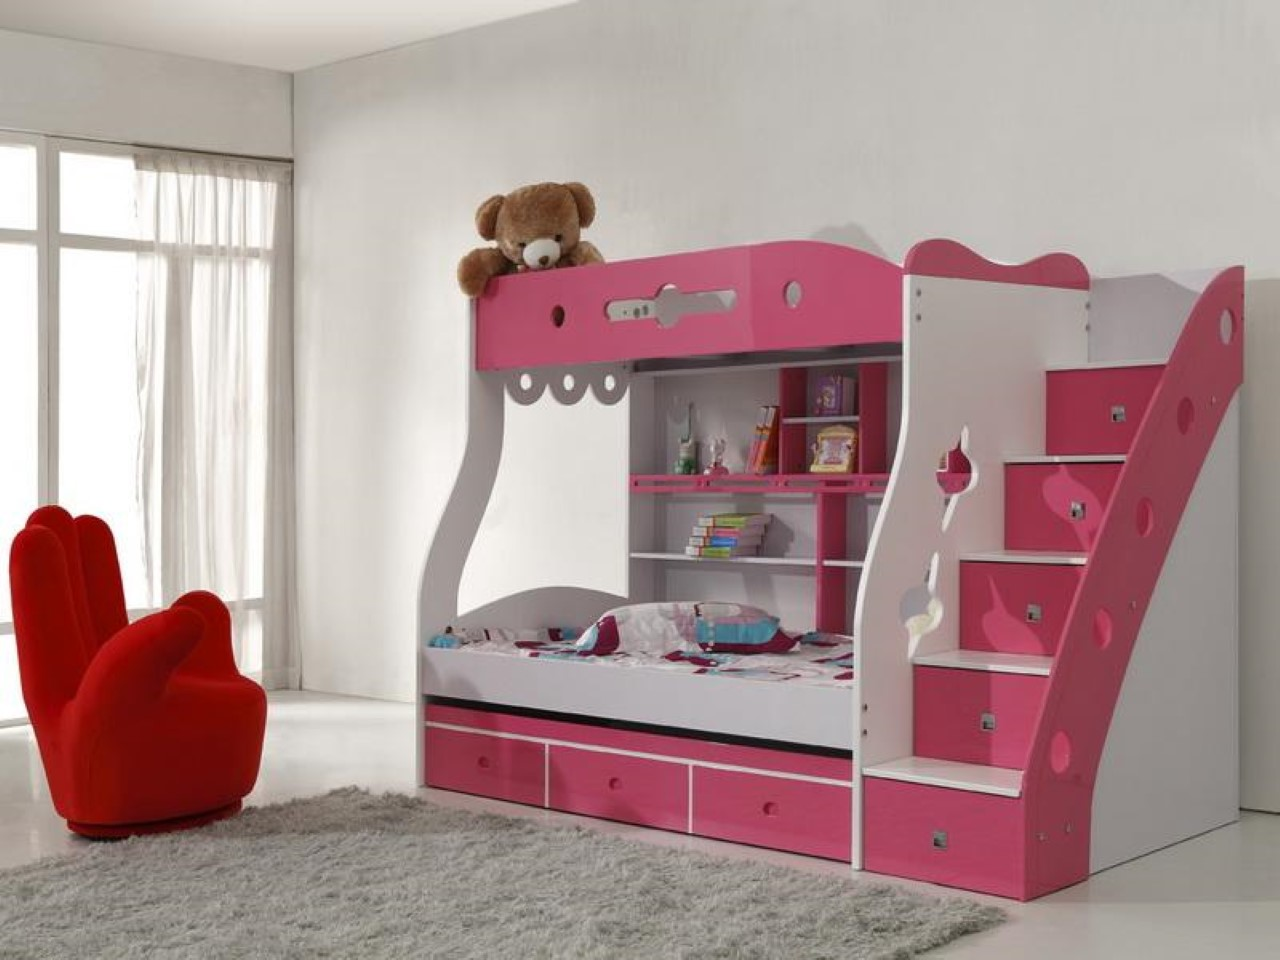 Kidszone Furniture Bunk Bed 36